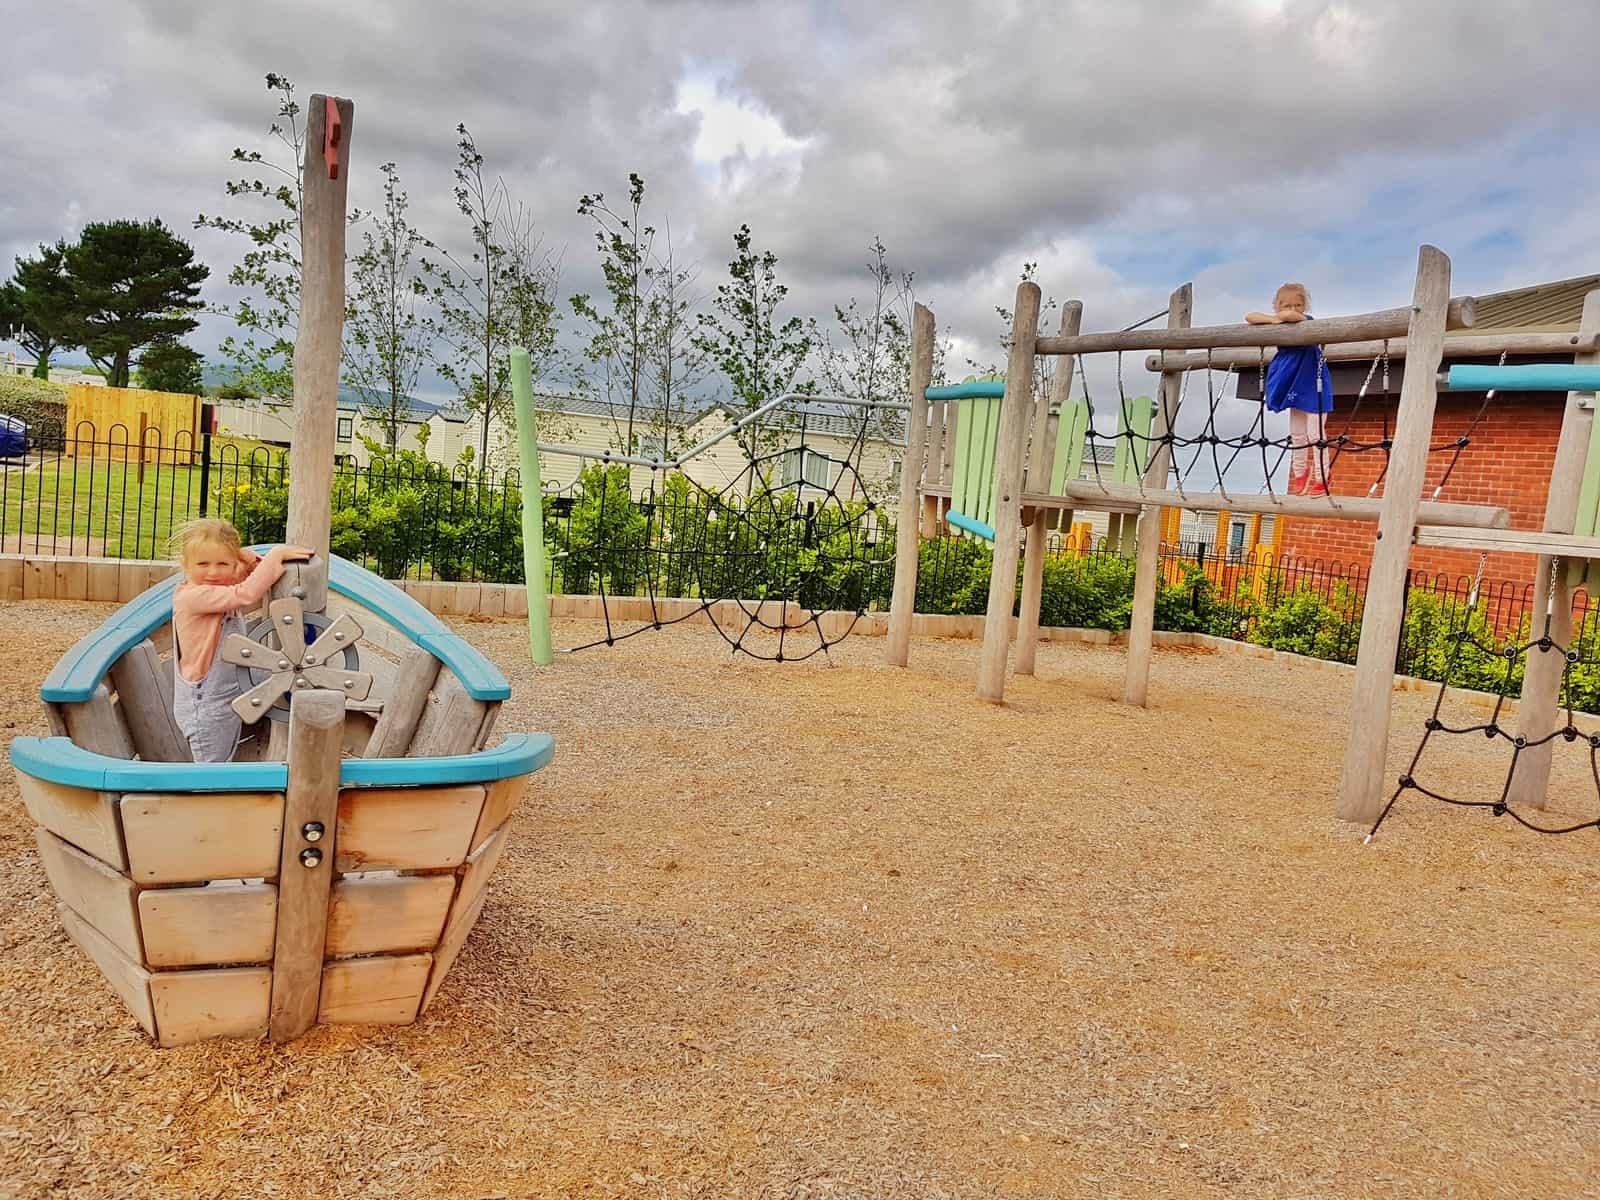 Hoburne Blue Anchor playground